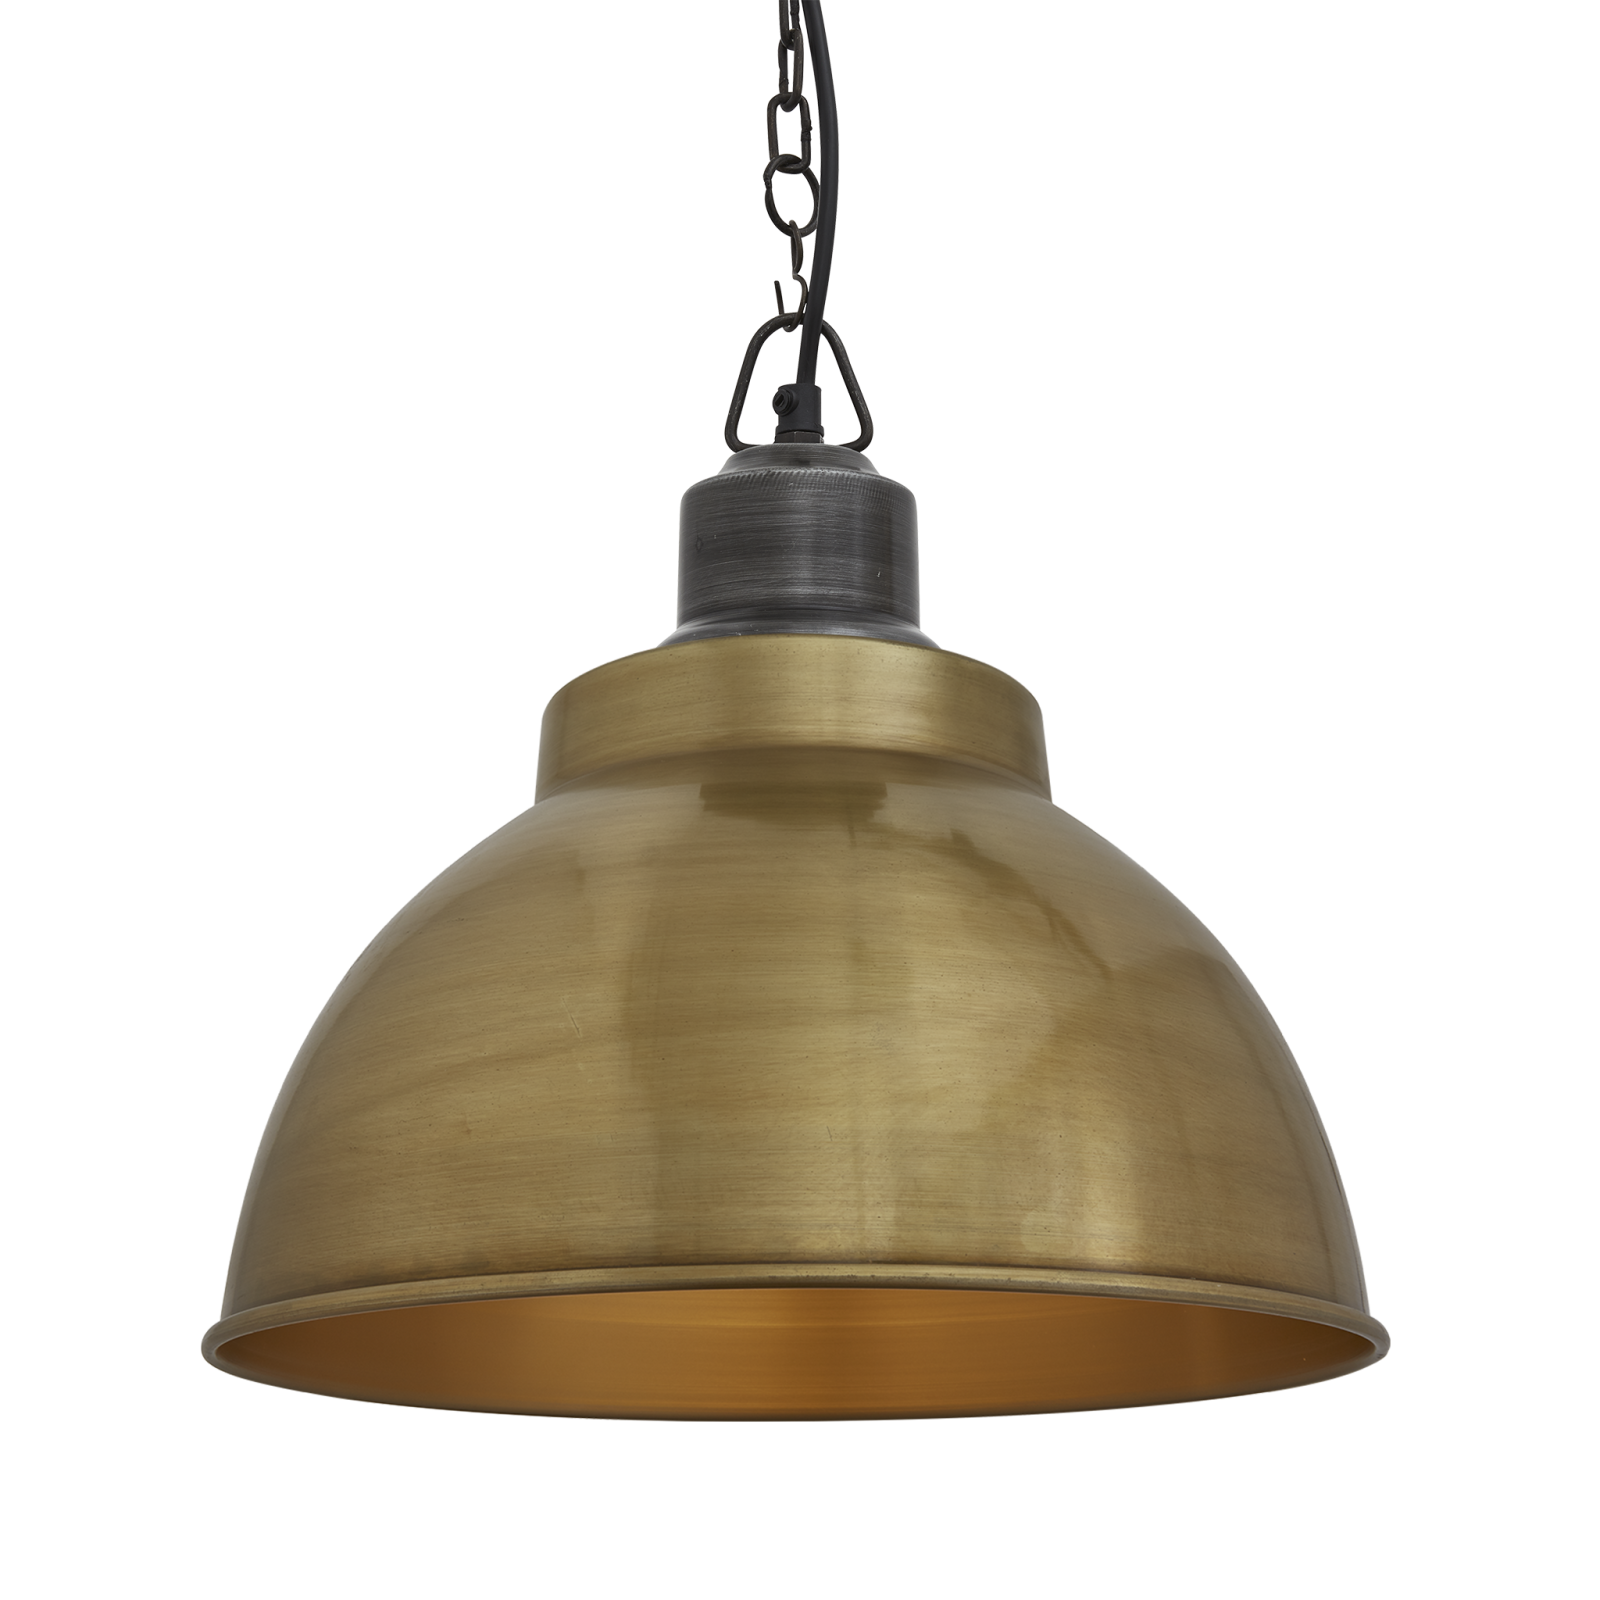 Brooklyn Dome Pendant Light - 13 Inch Brooklyn Dome Pendant - 13 Inch - Brass - Pewter Chain Holder